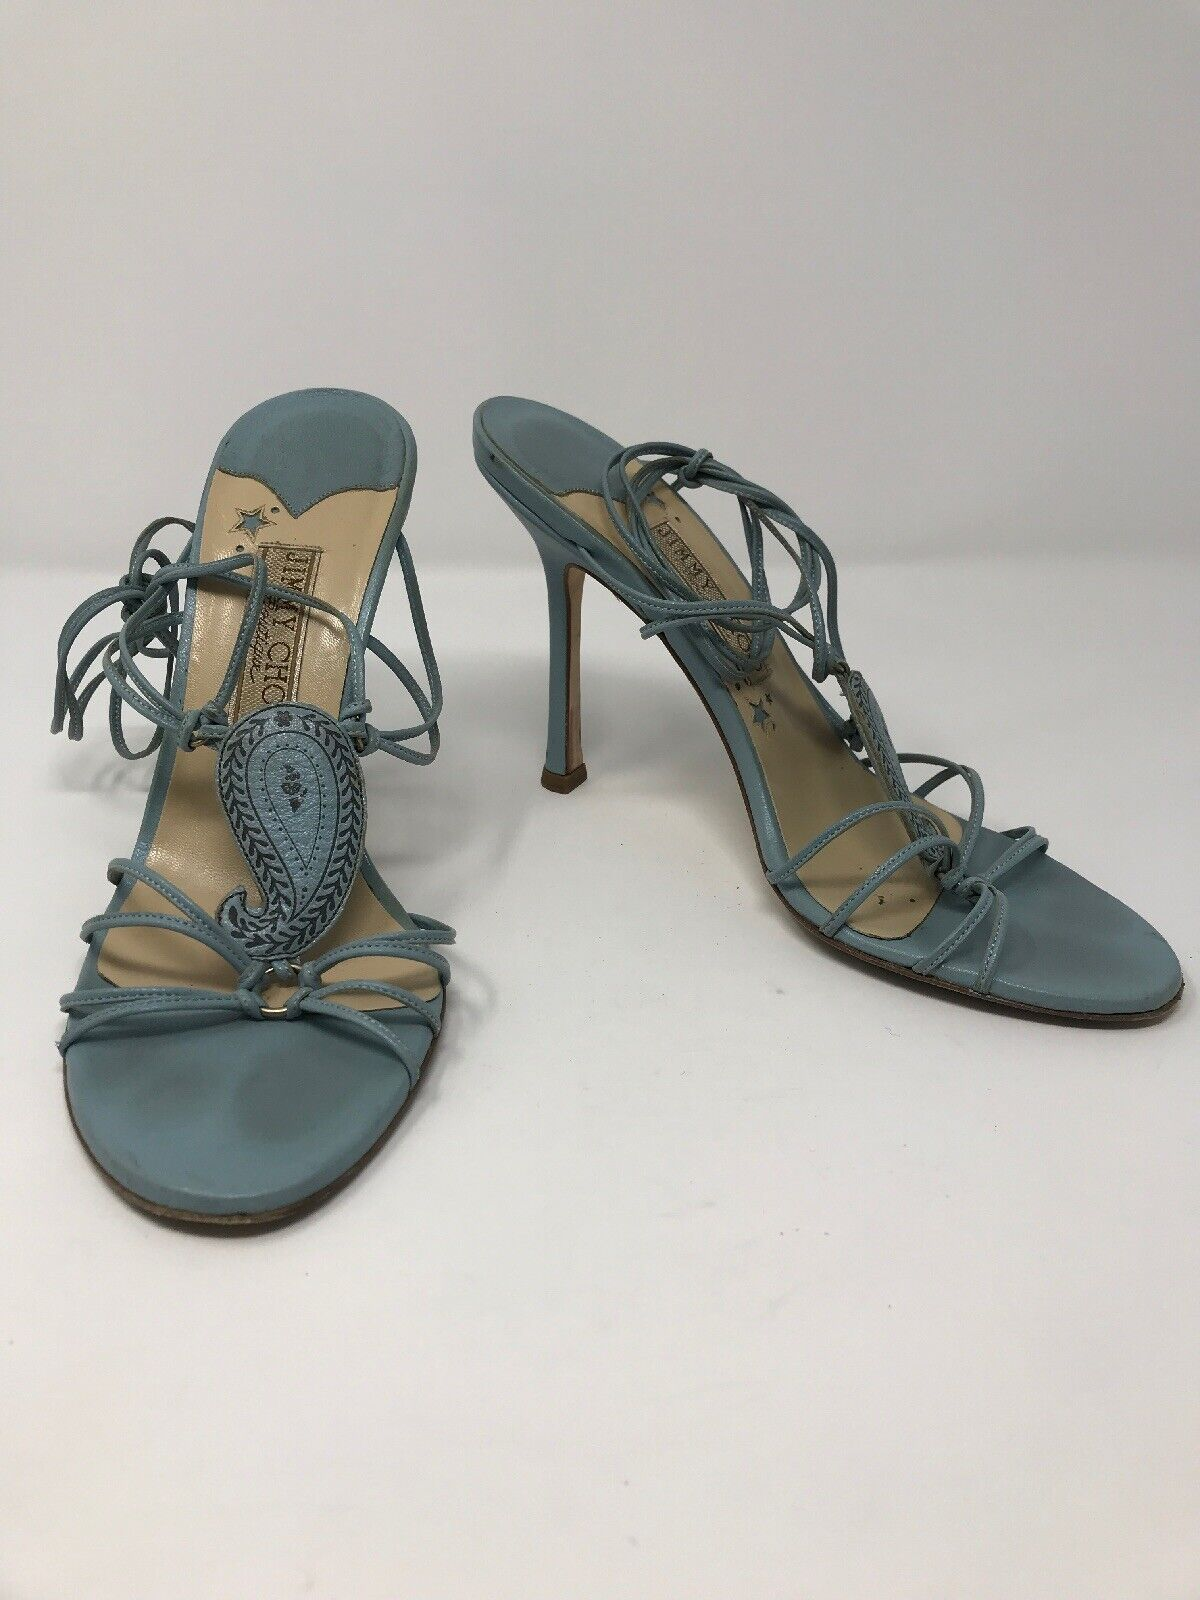 Jimmy Choo Boutique Light blueee Wrap Around Leather Sandals Size 38